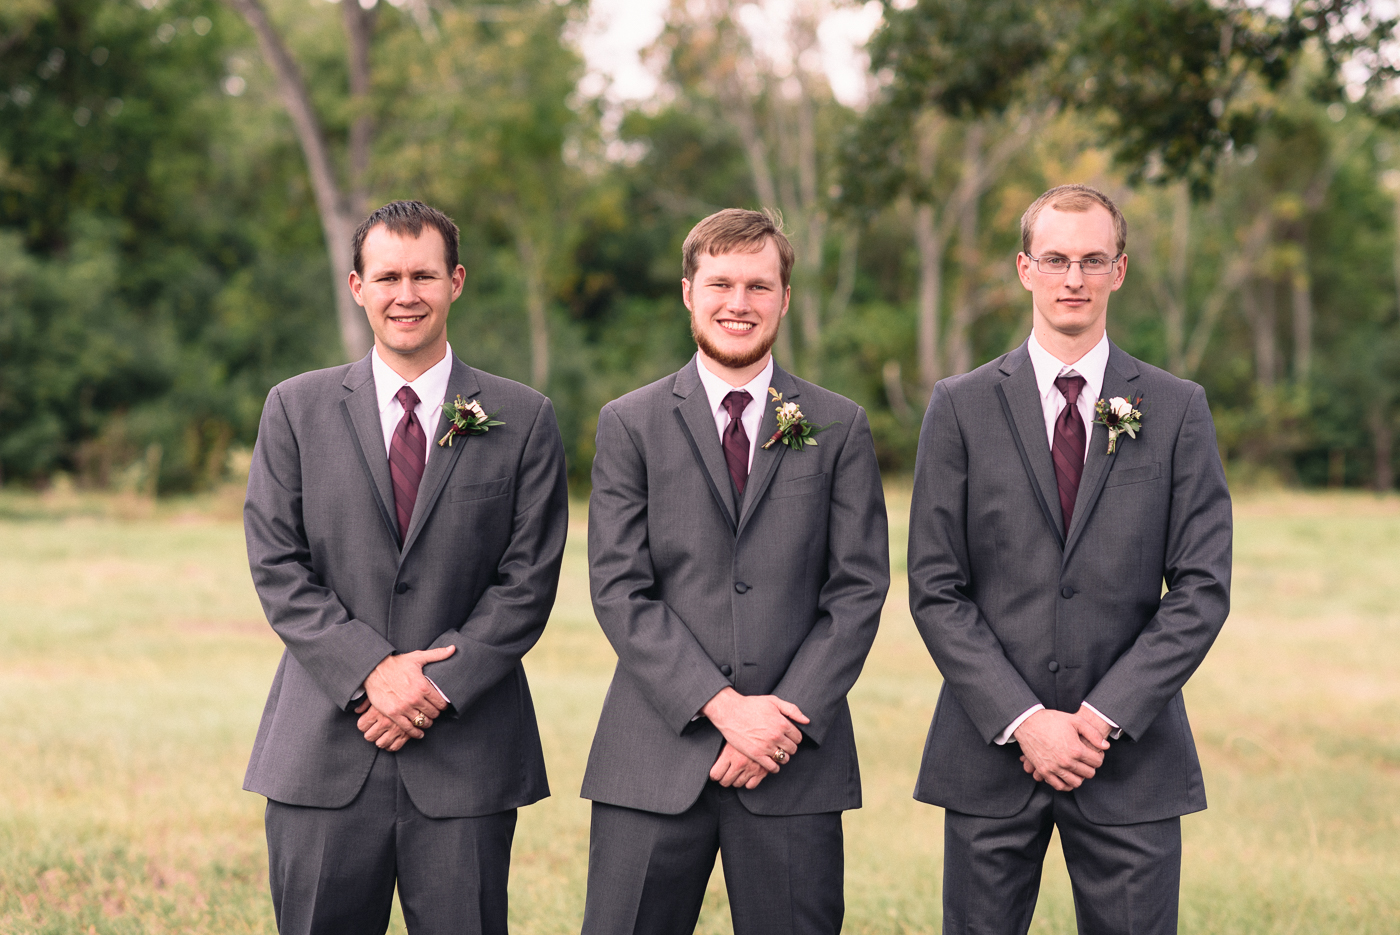 Groom and groomsmen portrait cousins boutonniere suit maroon dapper smile